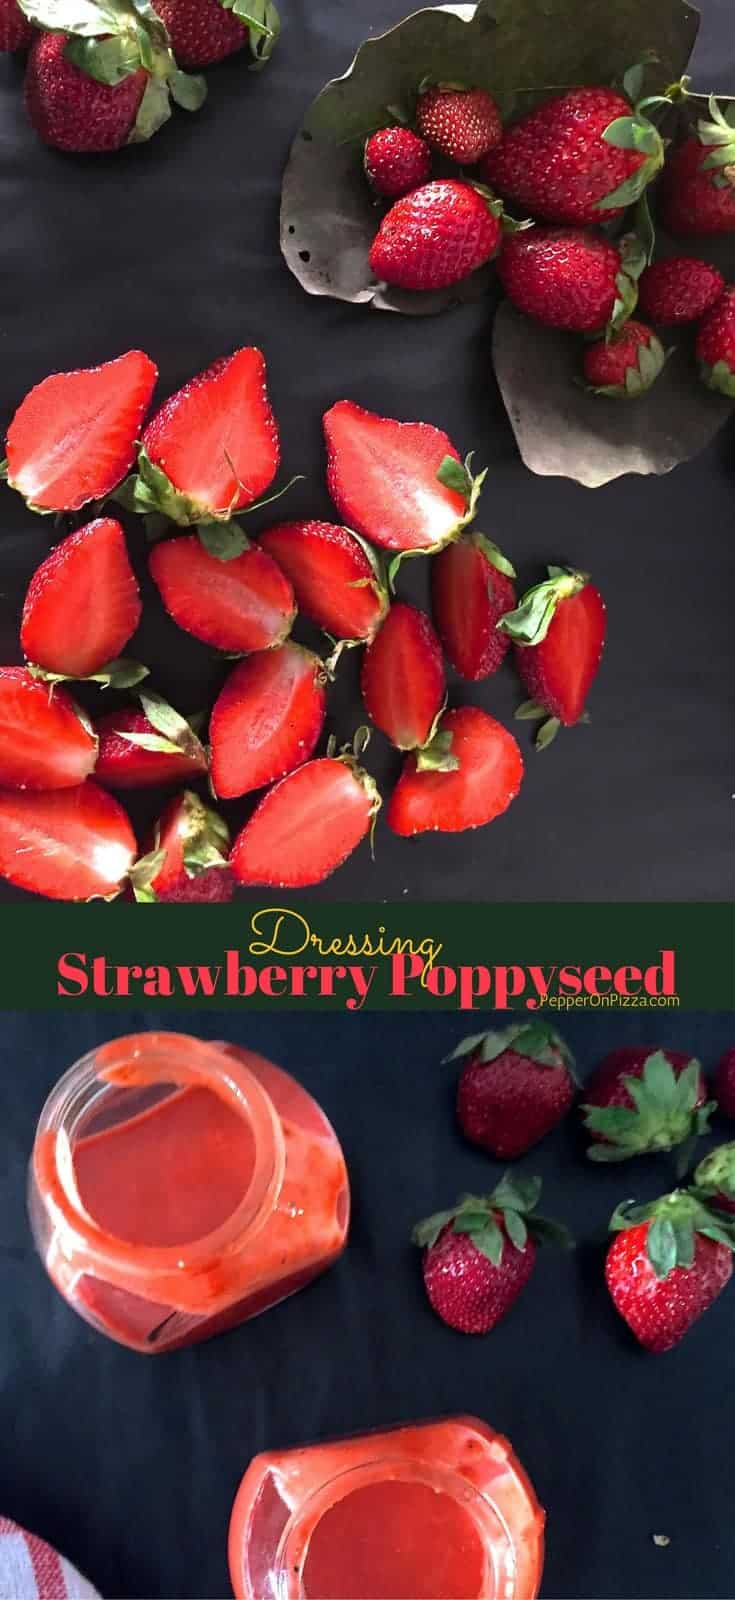 Strawberry Poppyseed Dressing with Chia Seeds